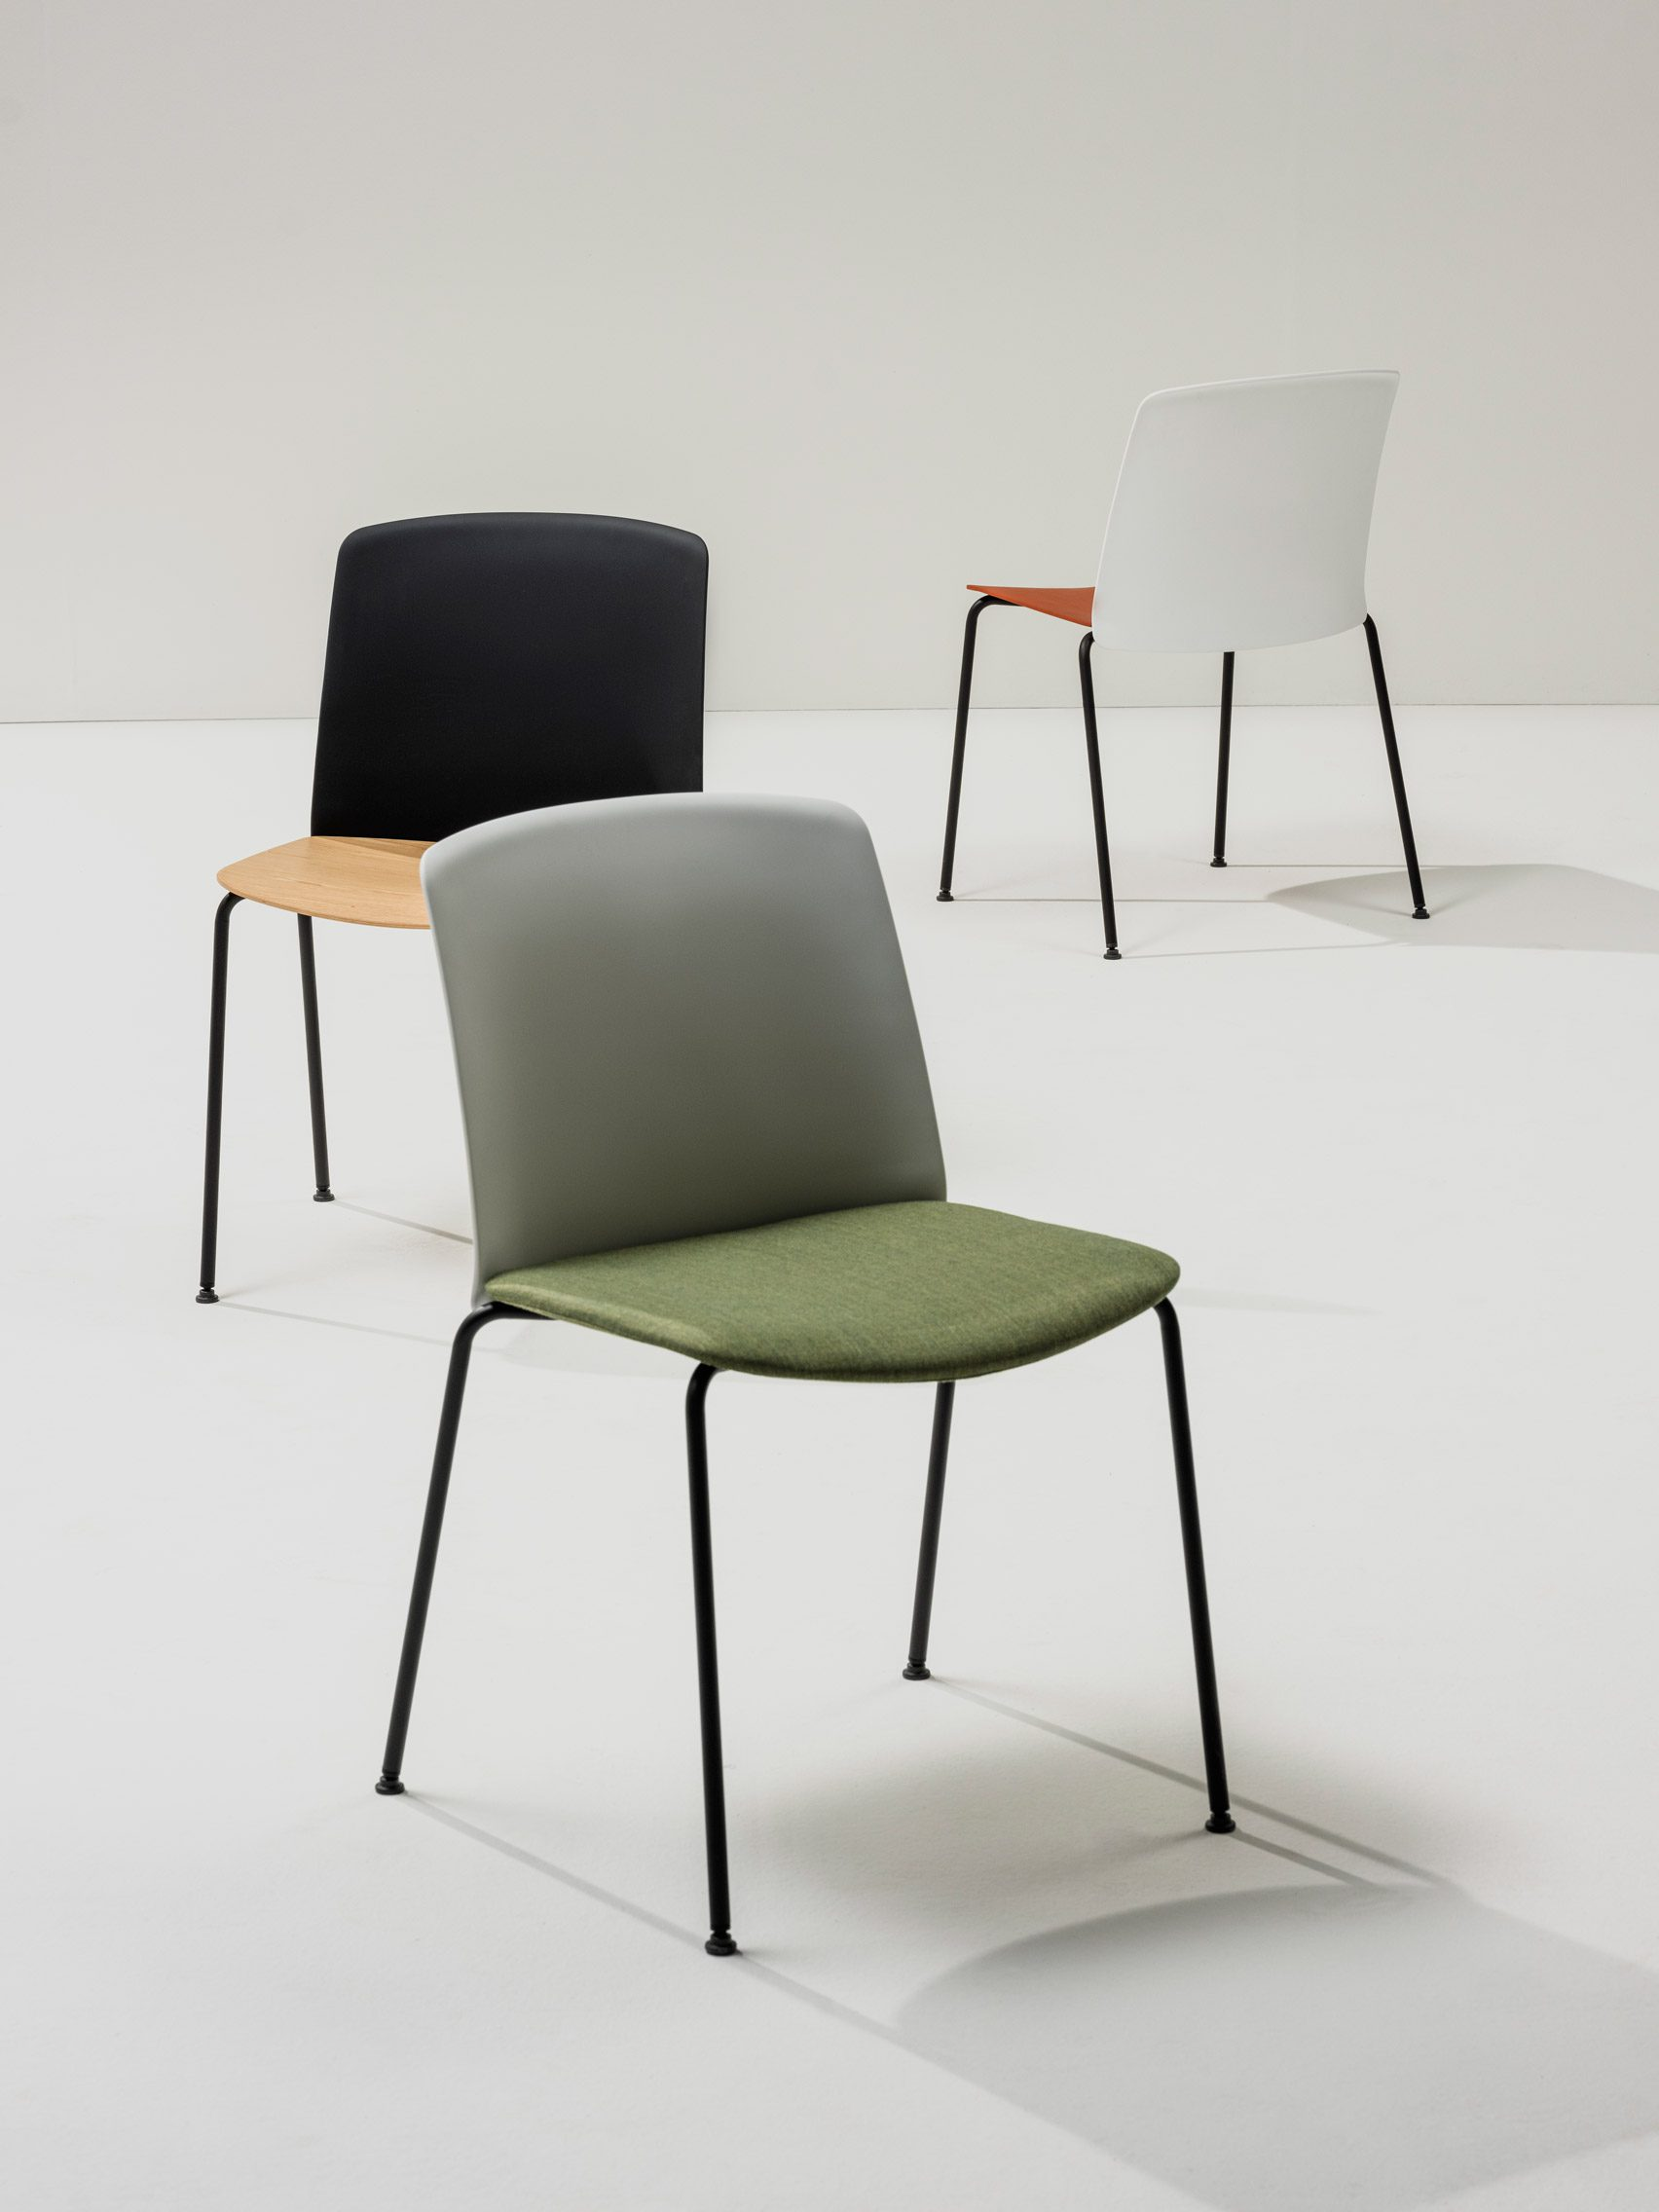 A photograph of different chairs in various colours